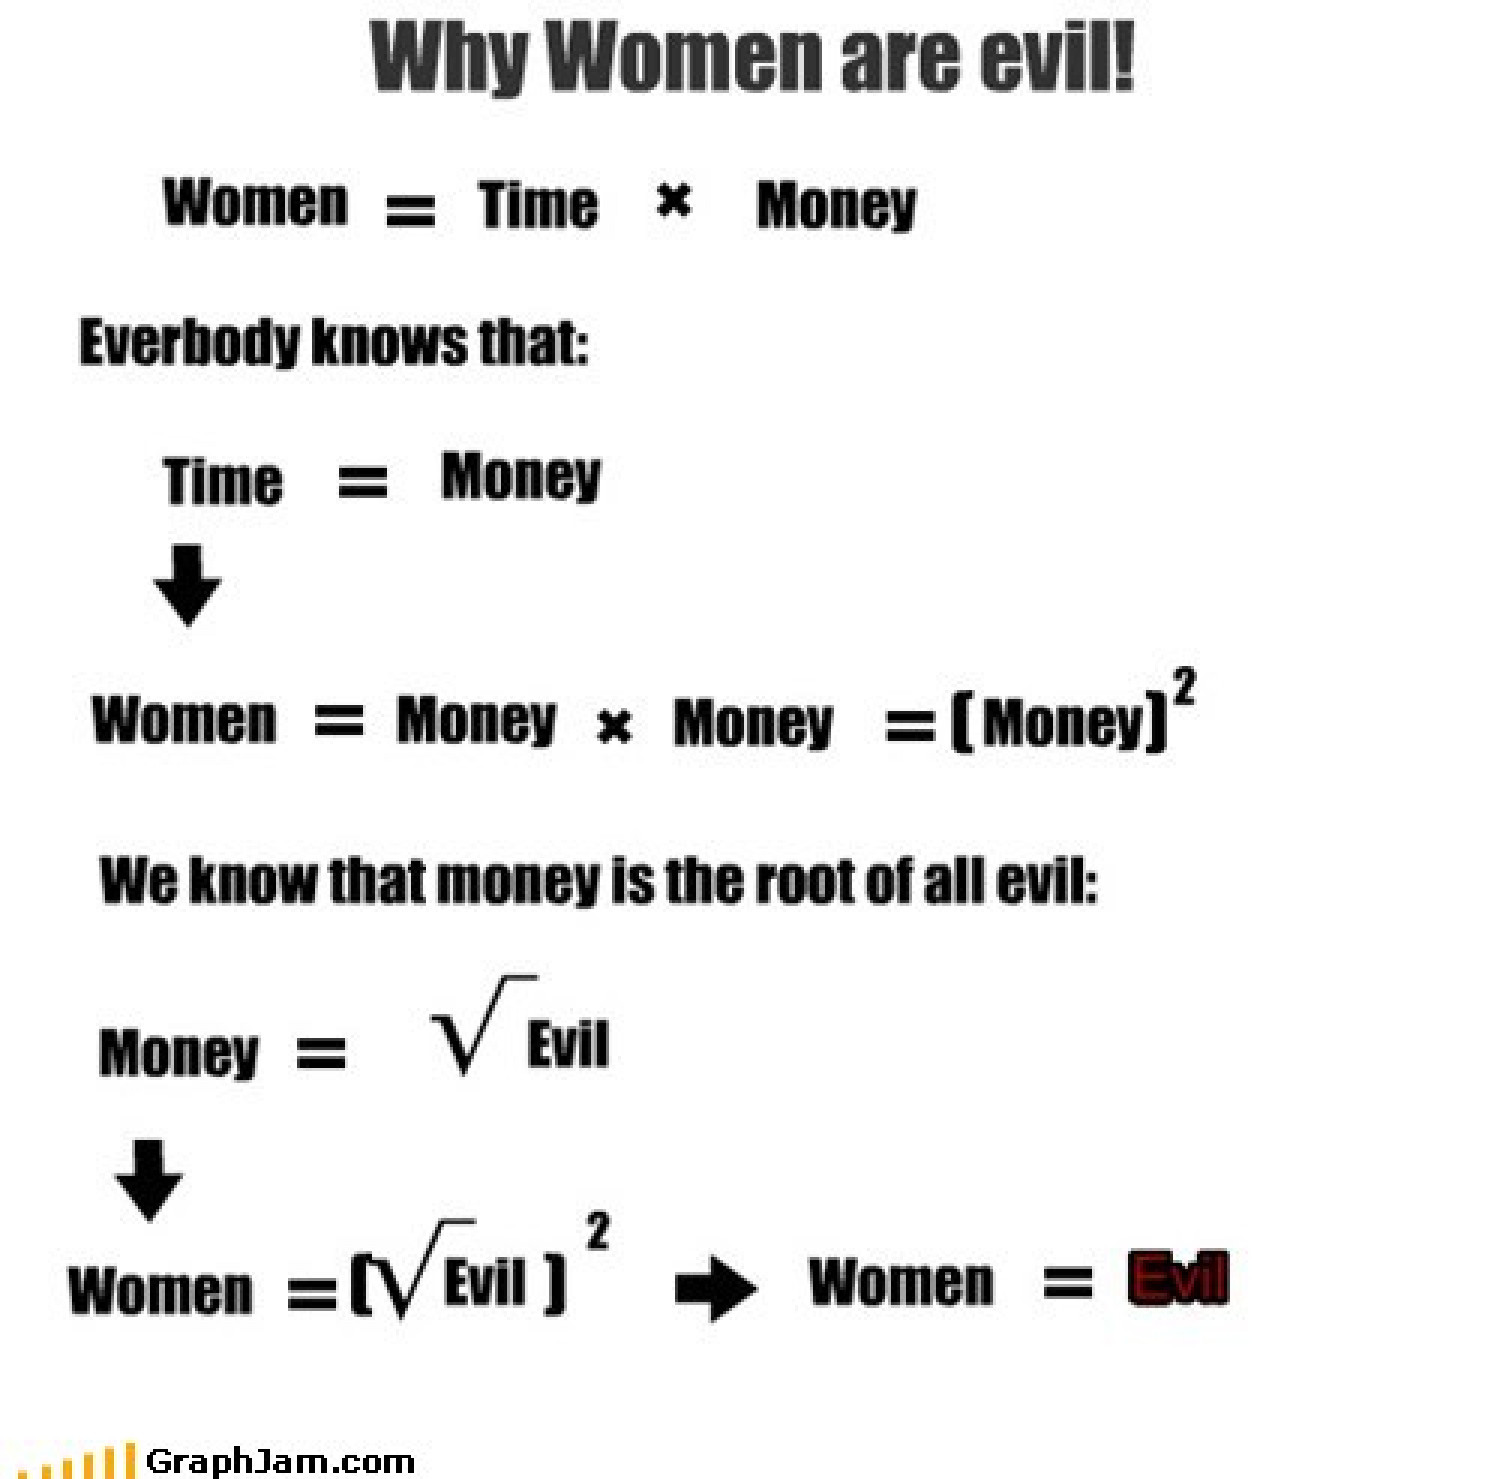 Why Women Are Evil Infographic